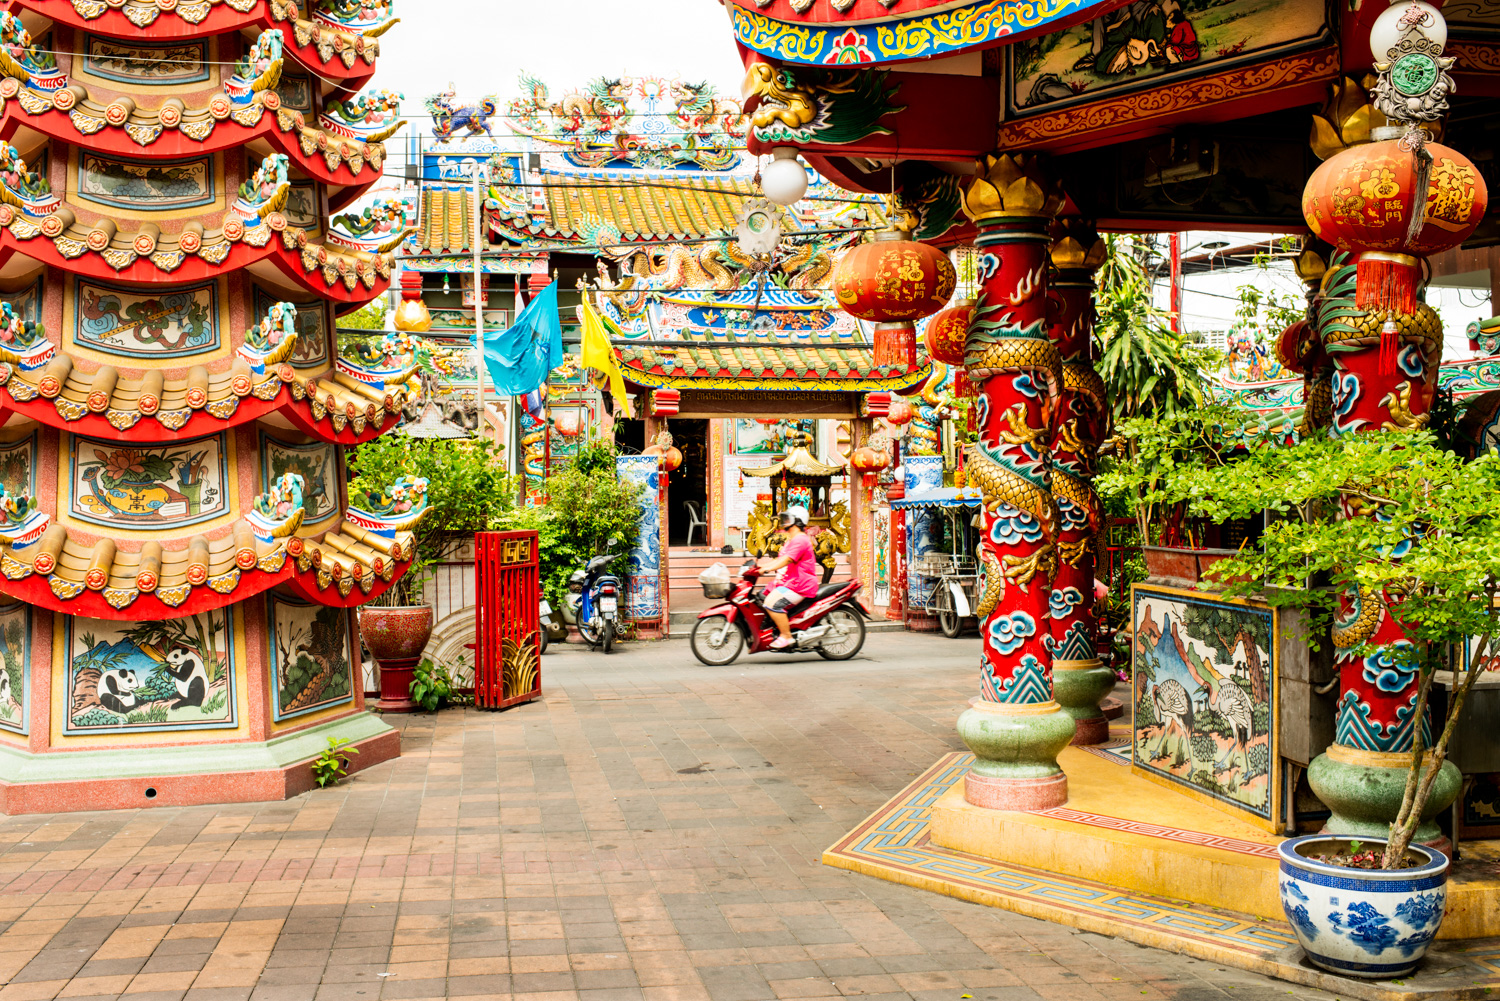 Chinese temple near Warorot Market in Chiang Mai - 7 Steps to Find Inspiration so You Can Create Phenomenal Photographs